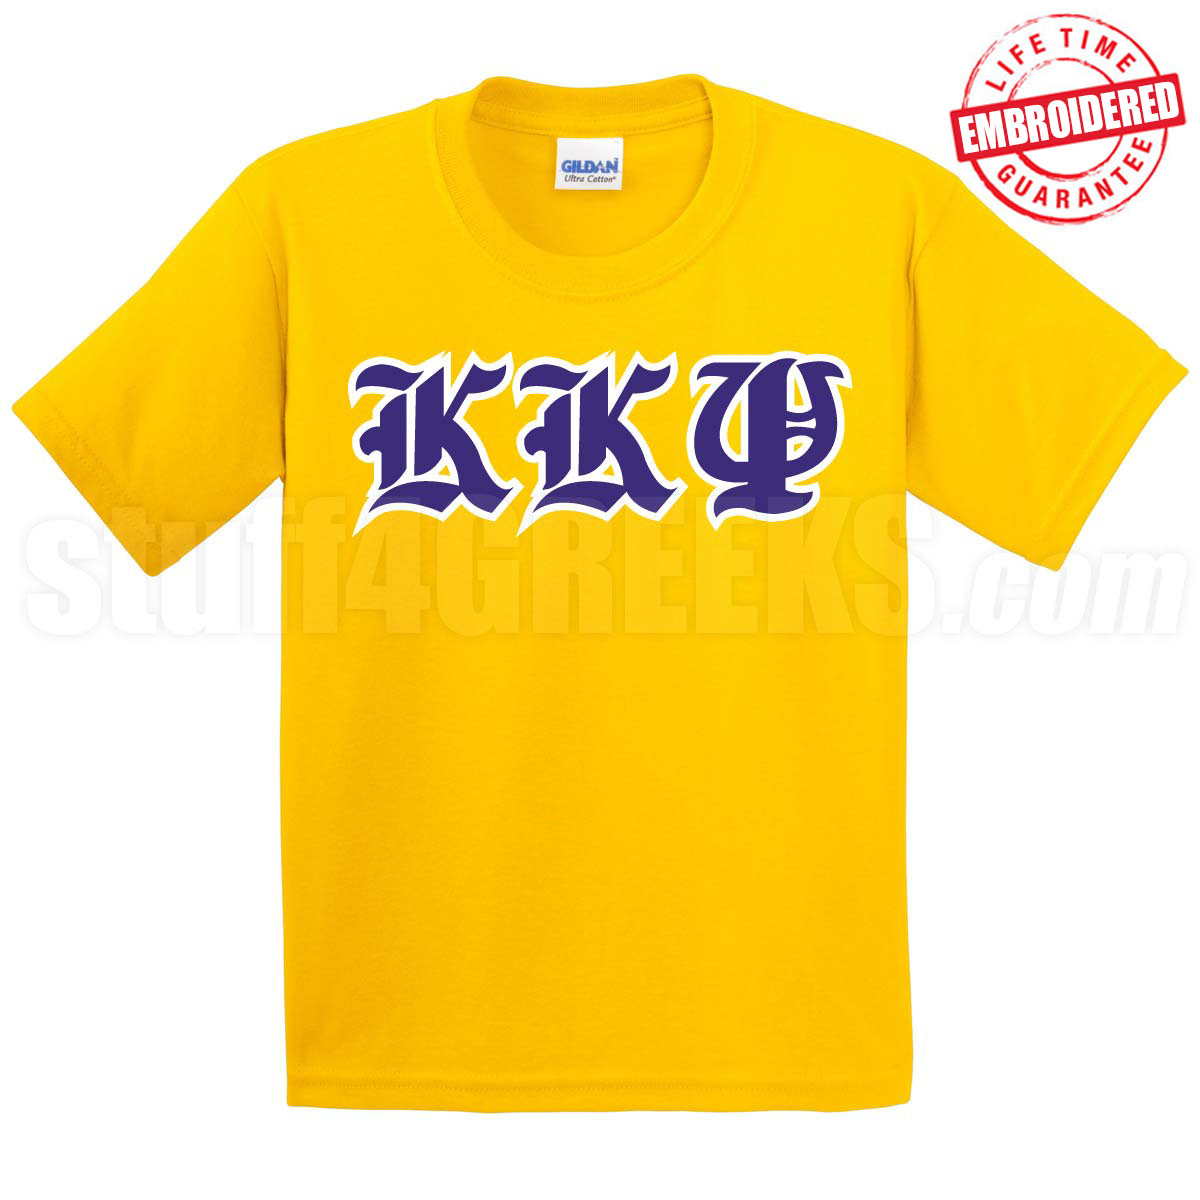 Kkpsi old english t shirt gold embroidered with